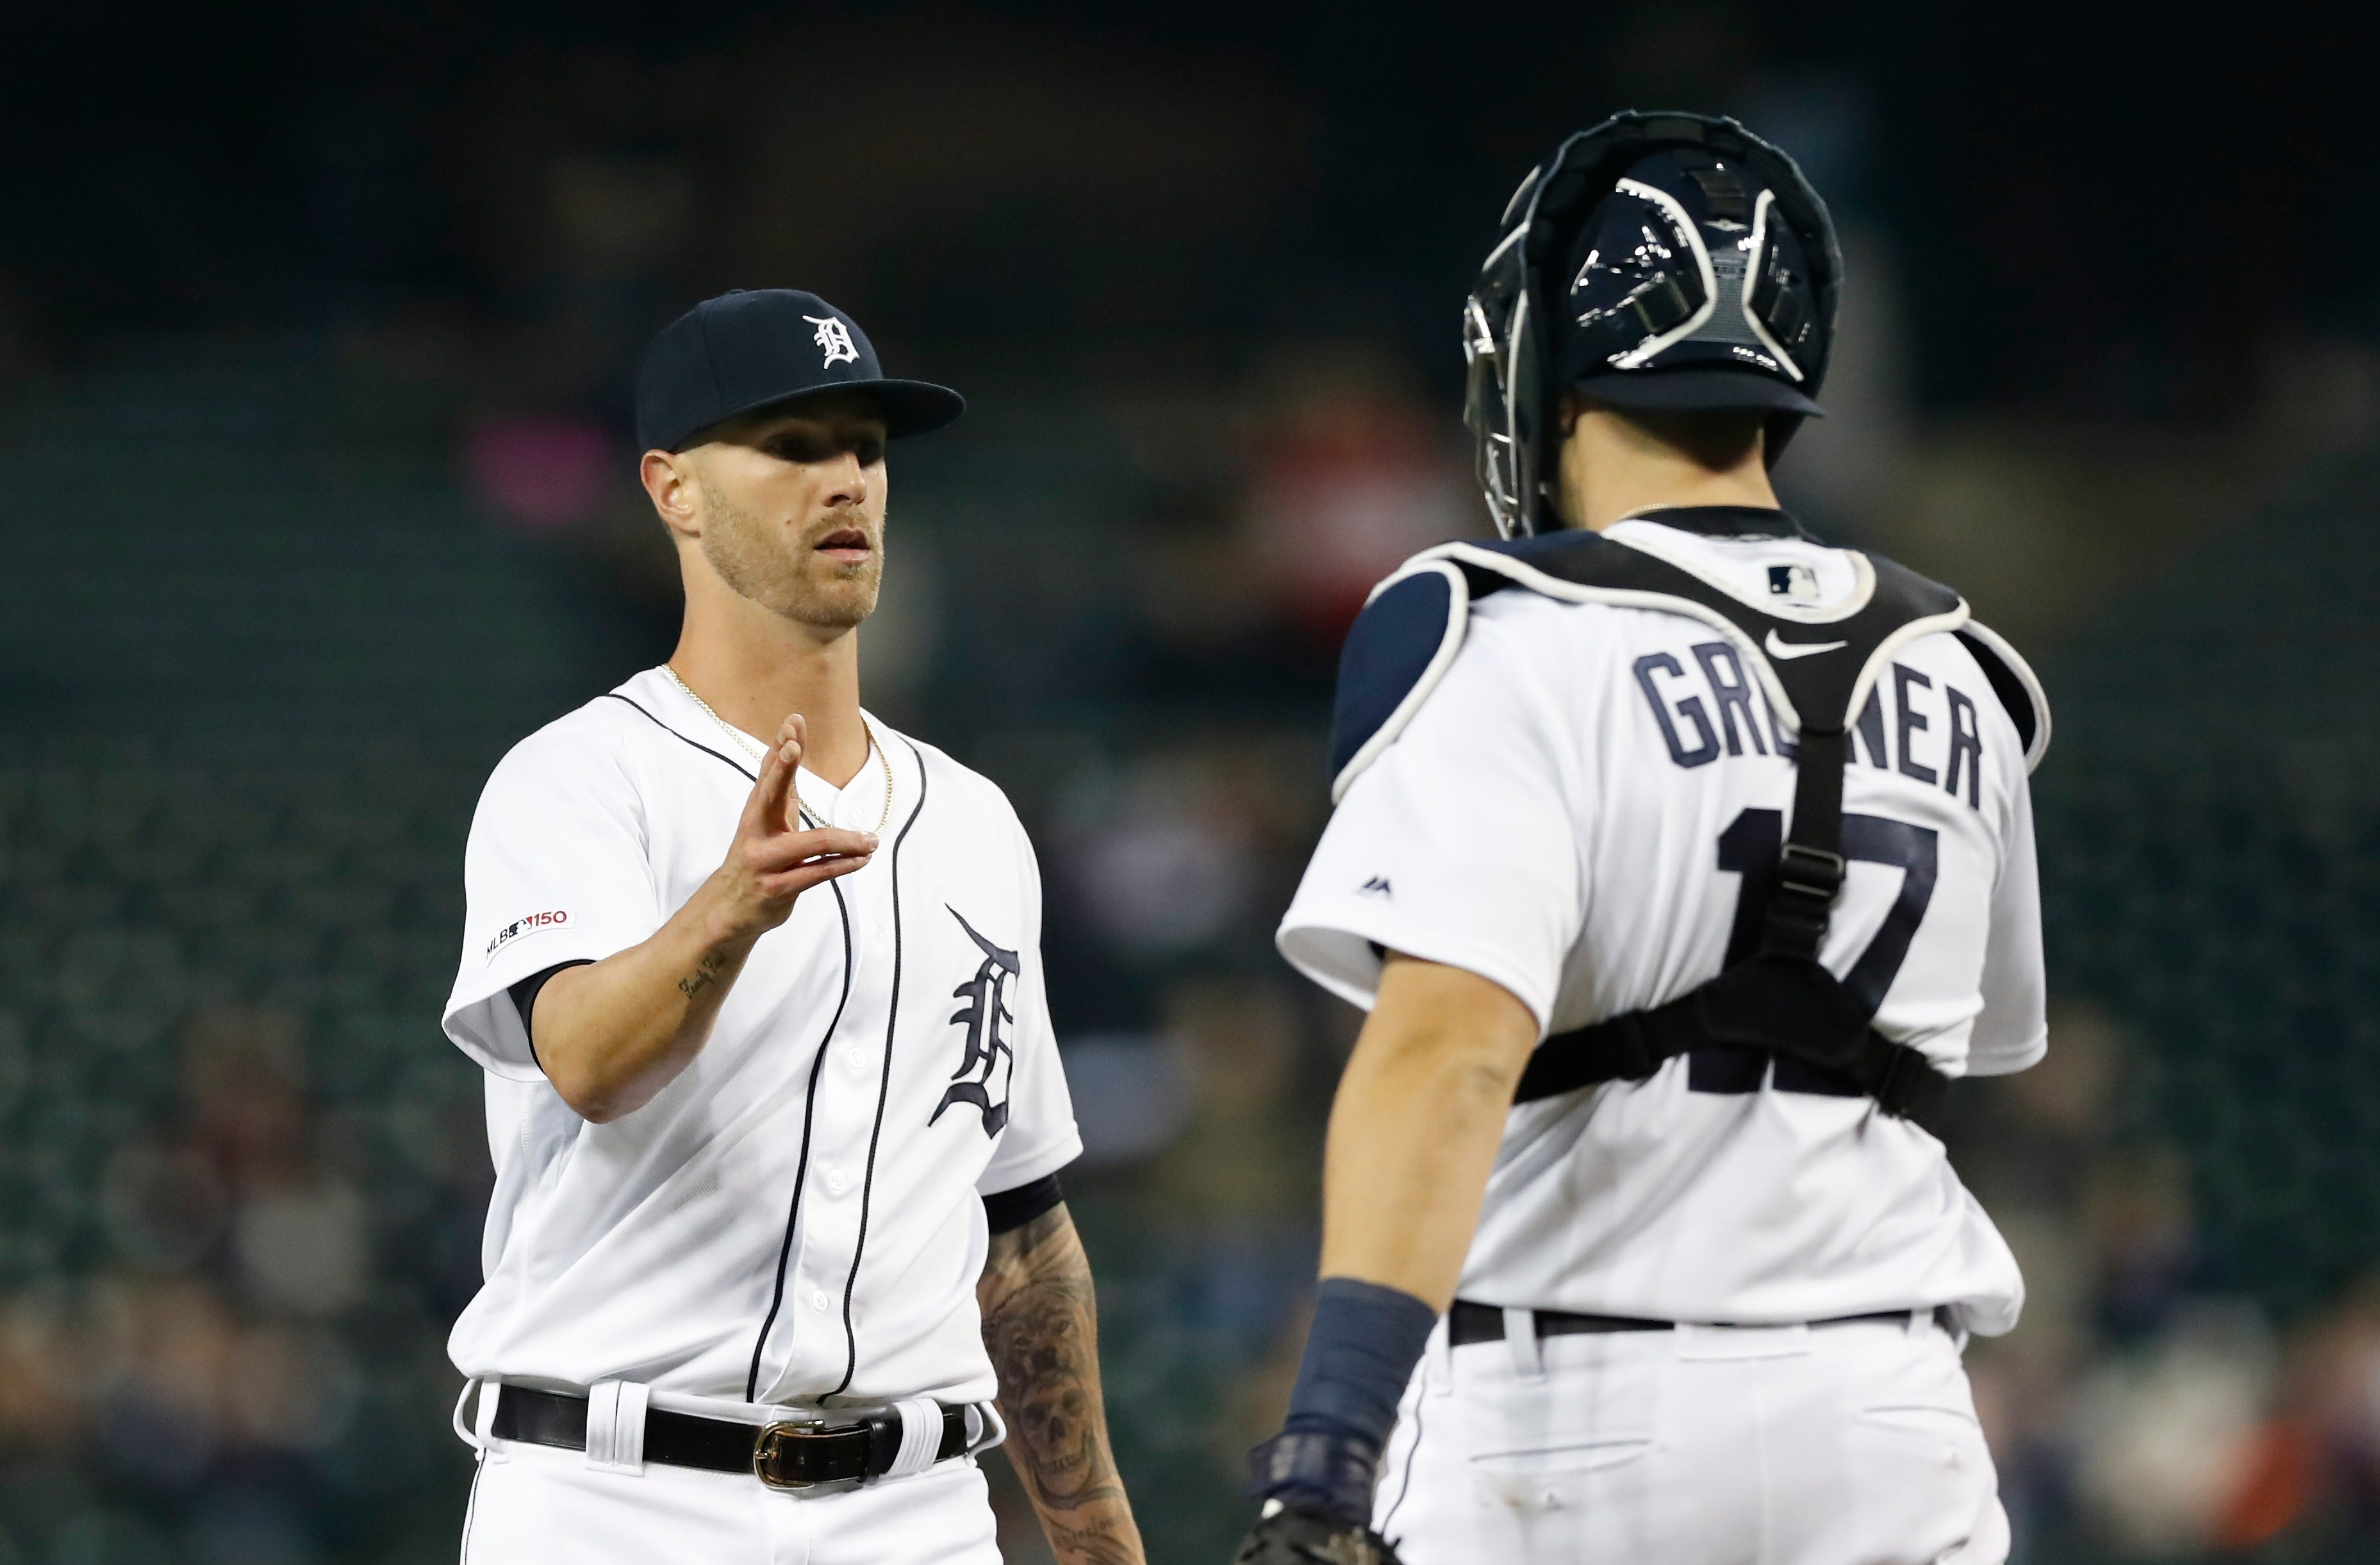 Greene gets 13th save in Tigers' 14th win, 4-3 over Royals